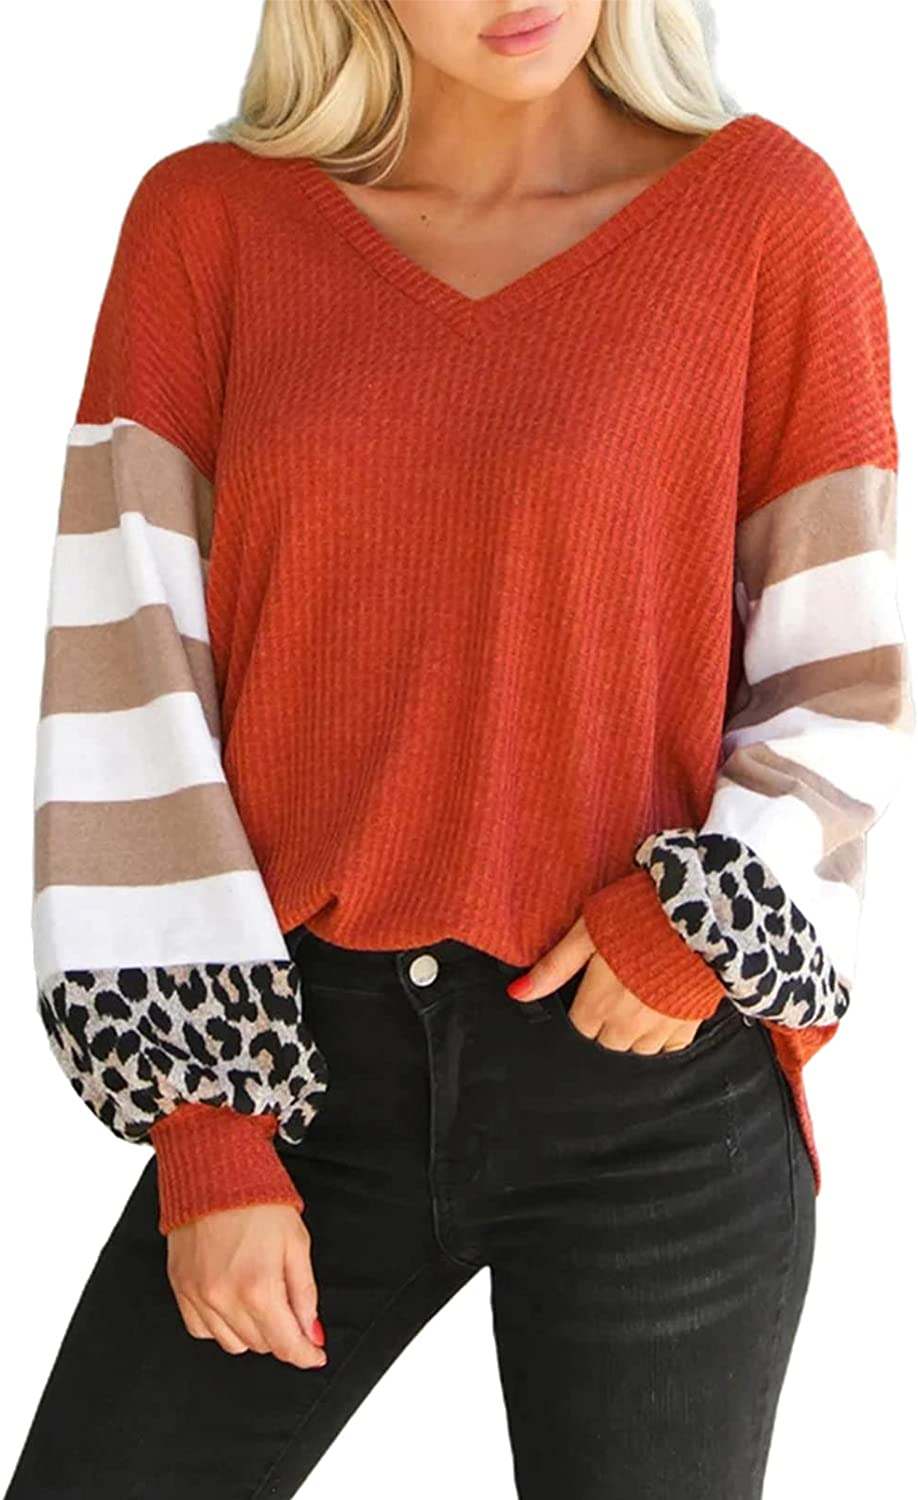 ROSKIKI Womens Casual Tunic Tops Leopard Long Sleeve Waffle Knit Orange Blouse with Twist Knot Loose Shirts